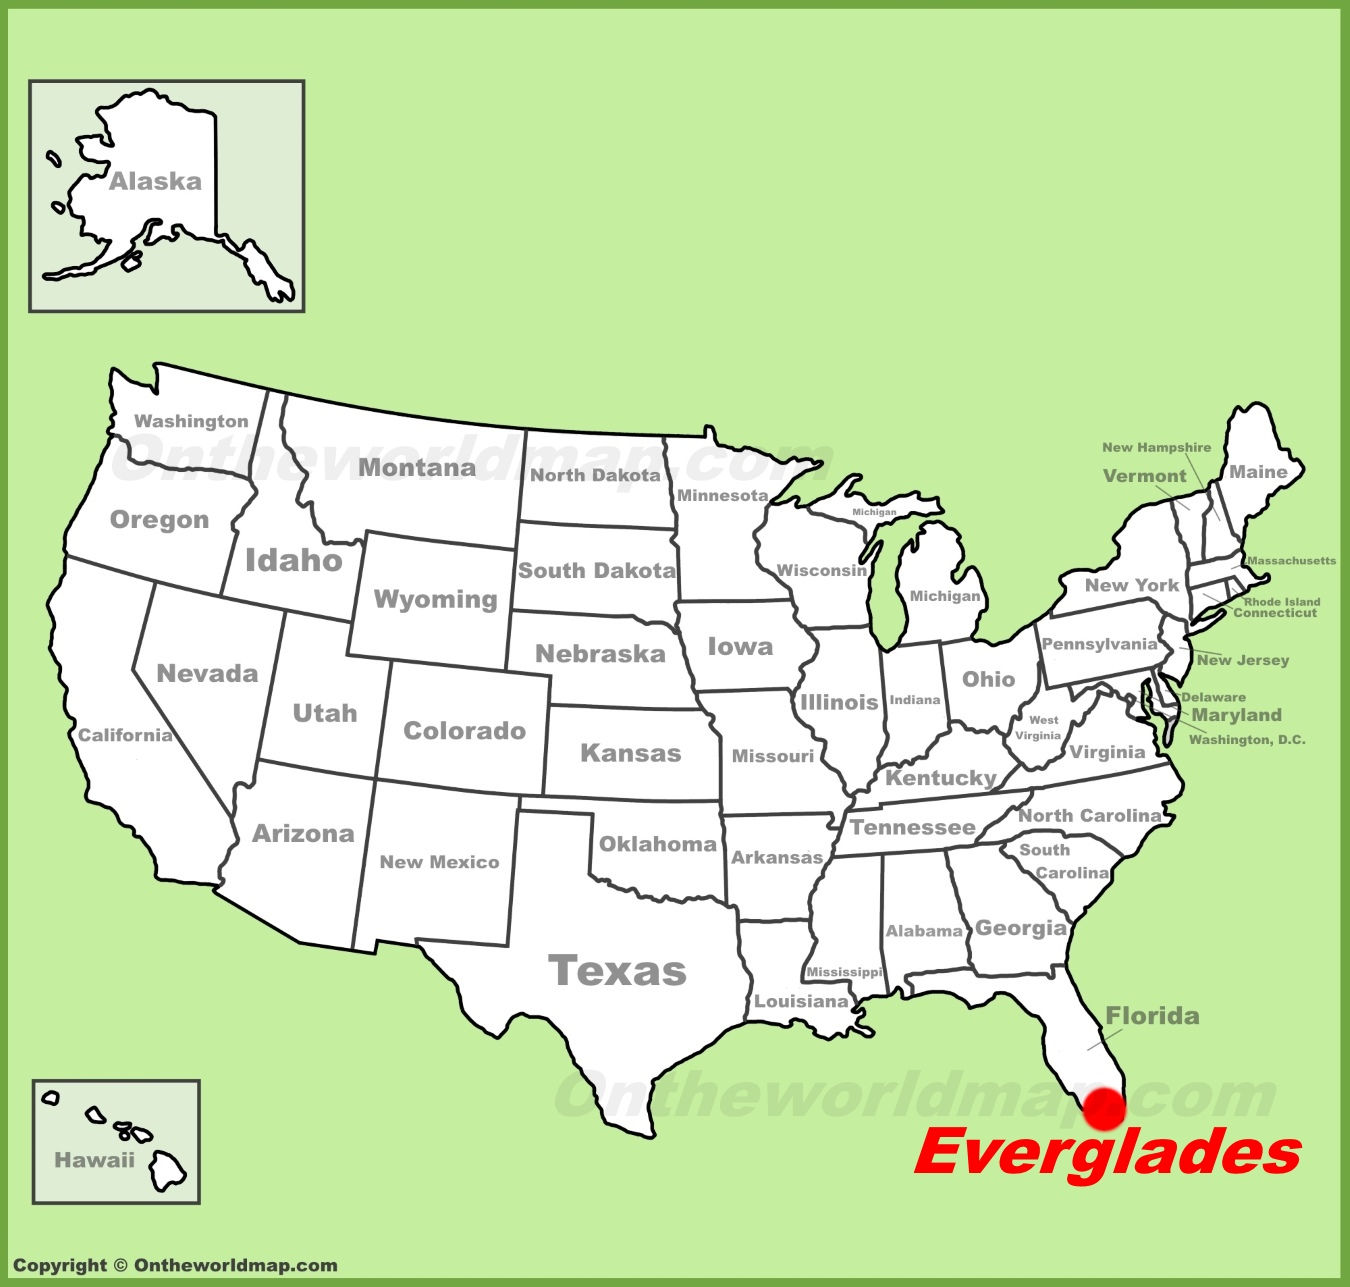 Everglades National Park location on the US Map